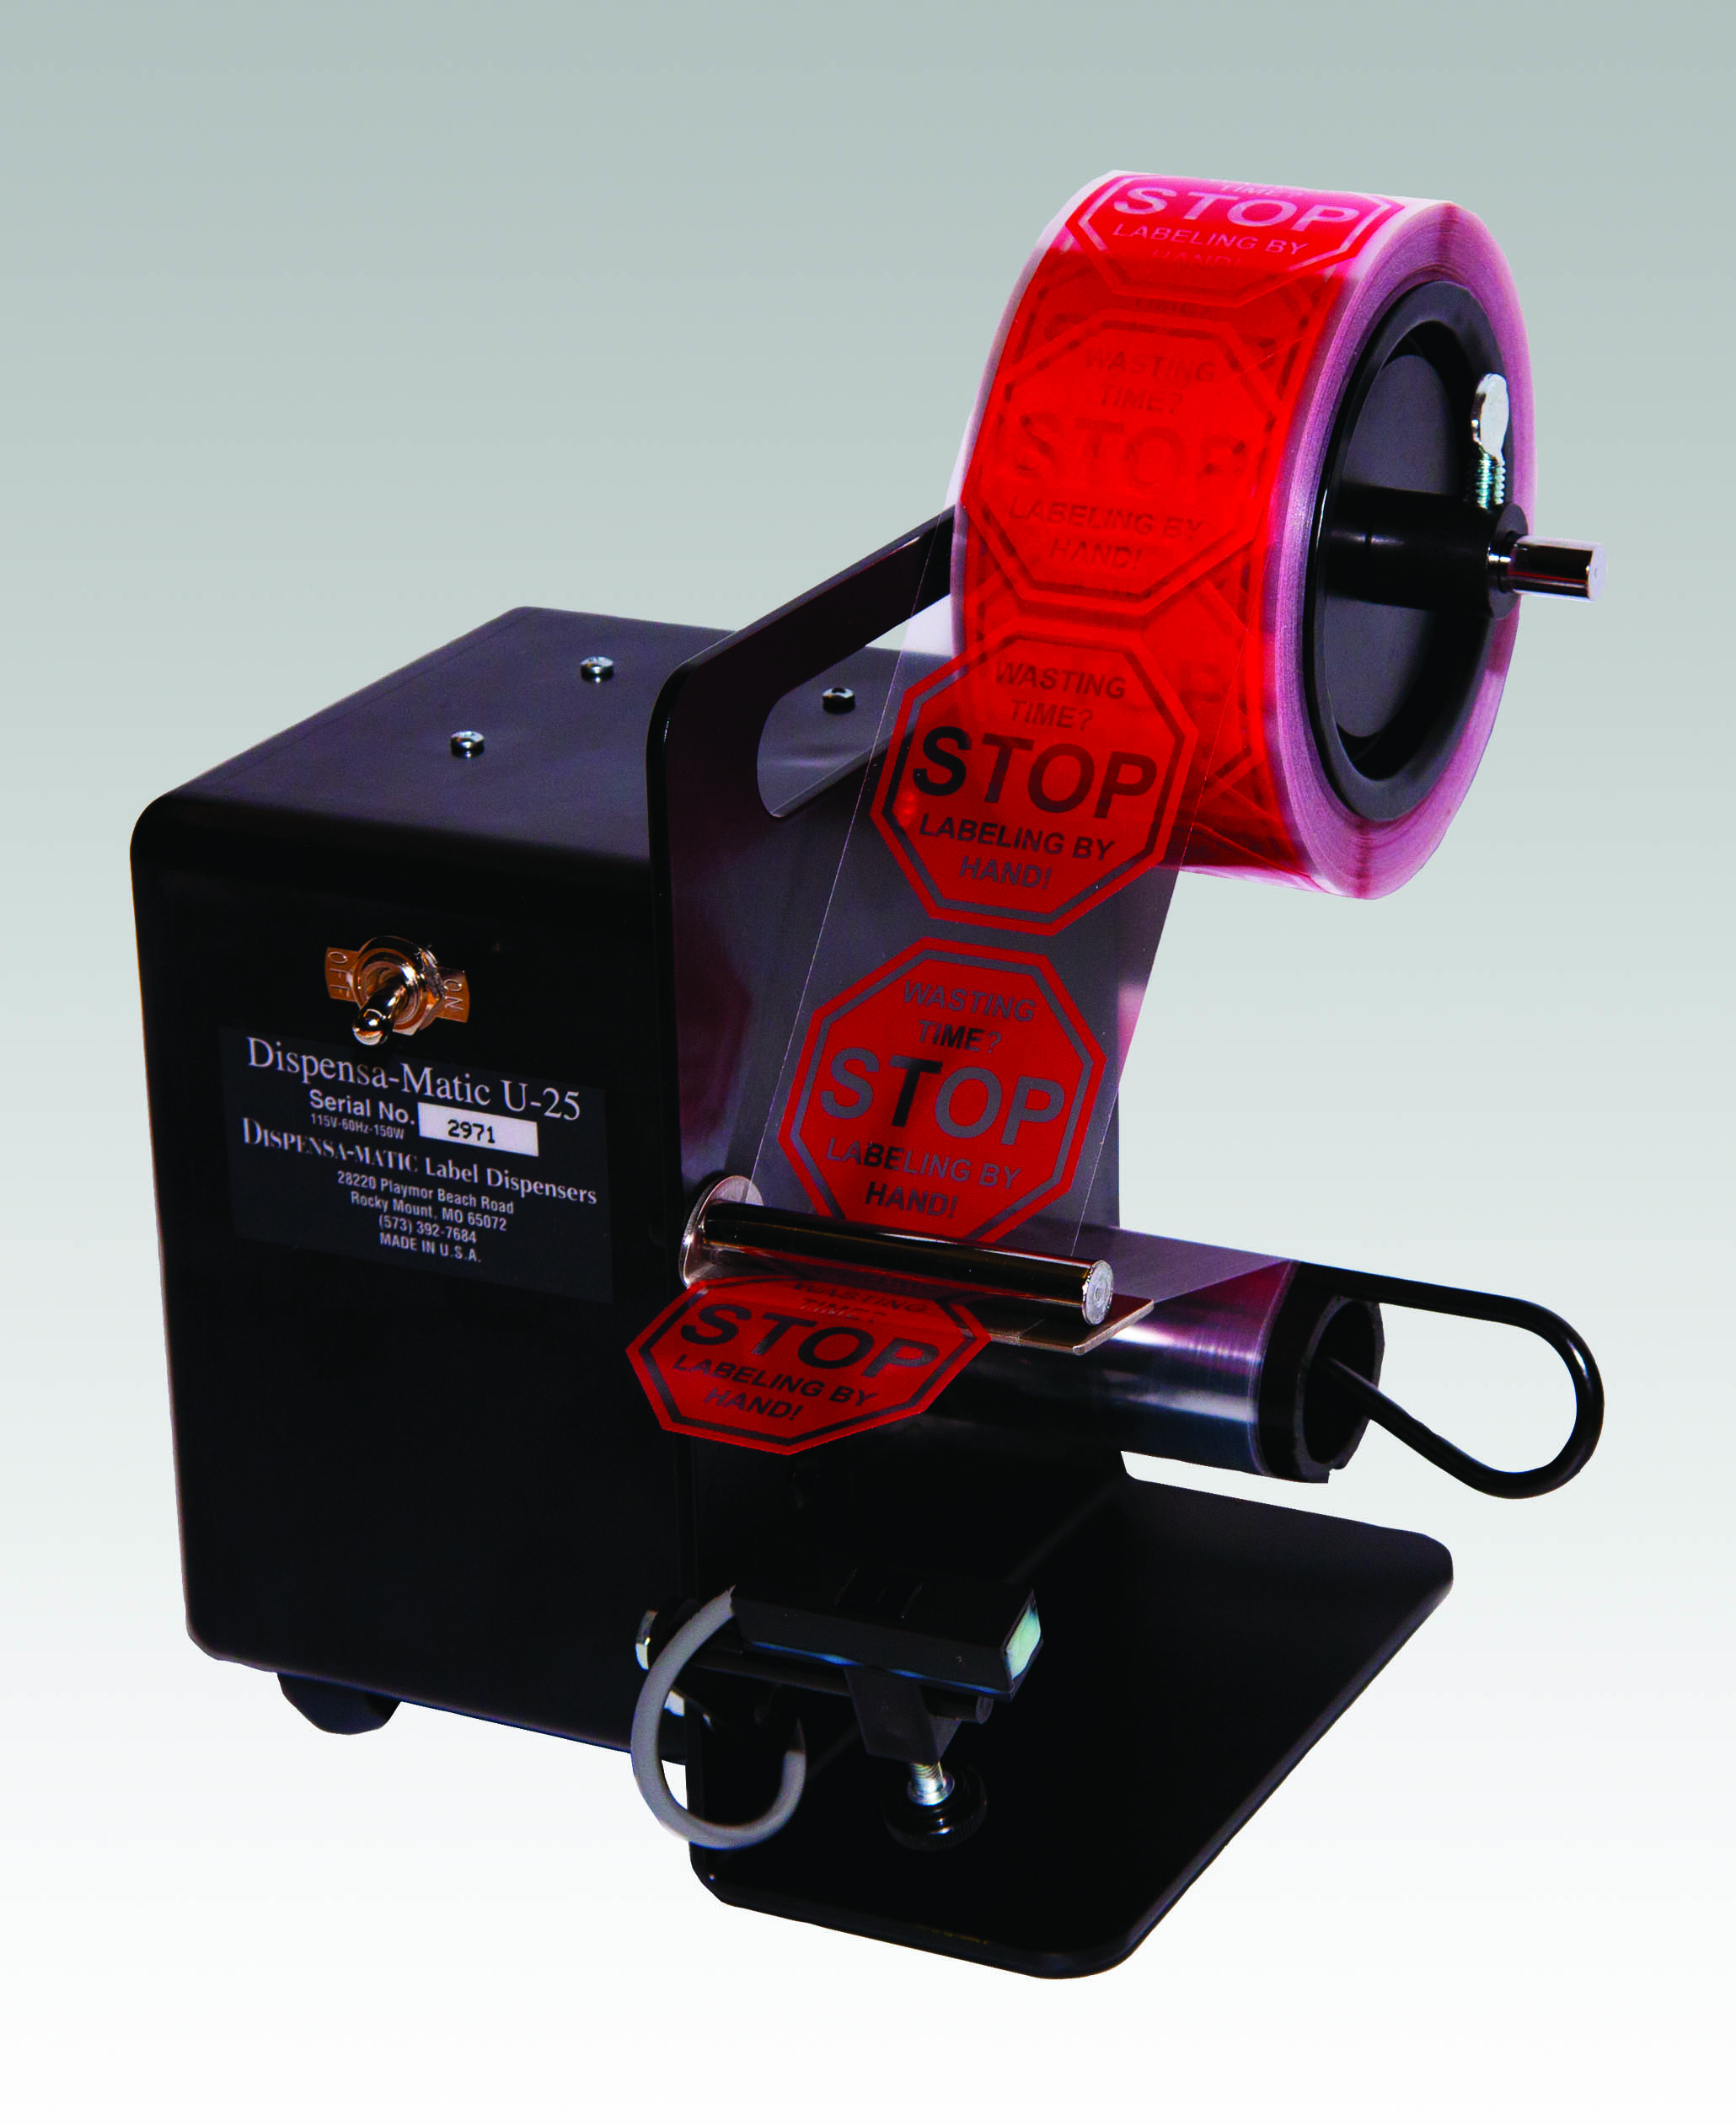 Label Dispenser Dispensateur Dms Marking Coding